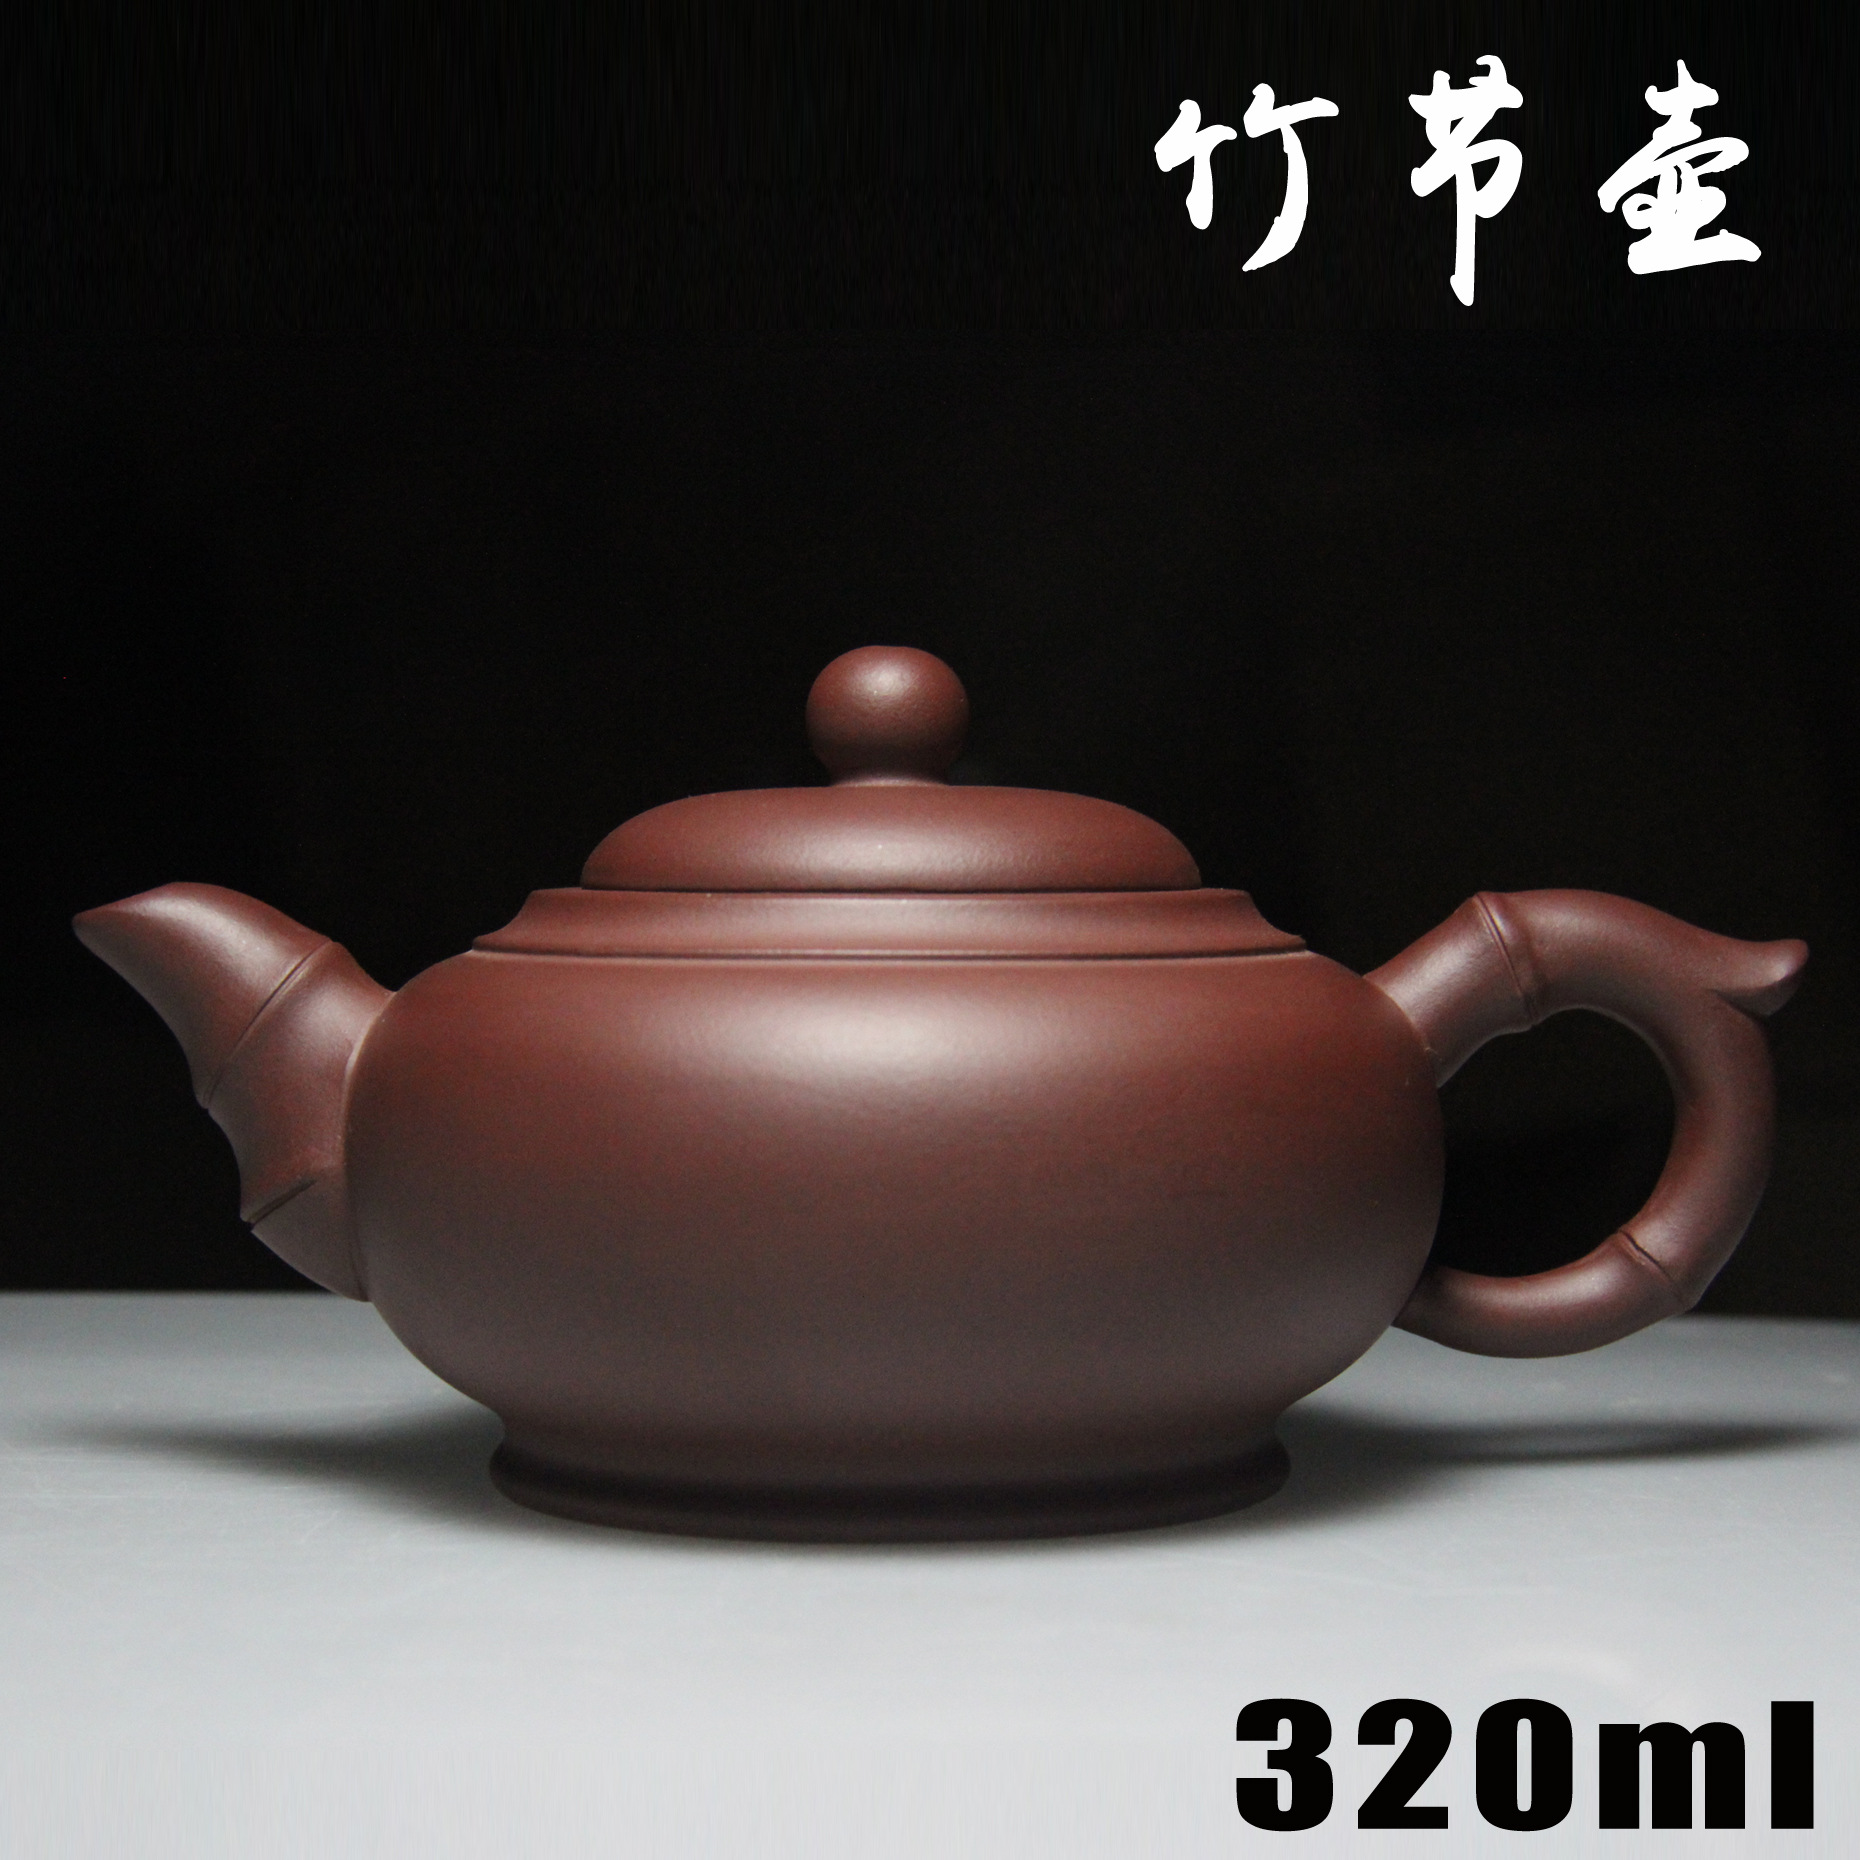 Bamboo pot authentic Yixing teapot famous handmade teapot old purple clay ore crafts Pot 153